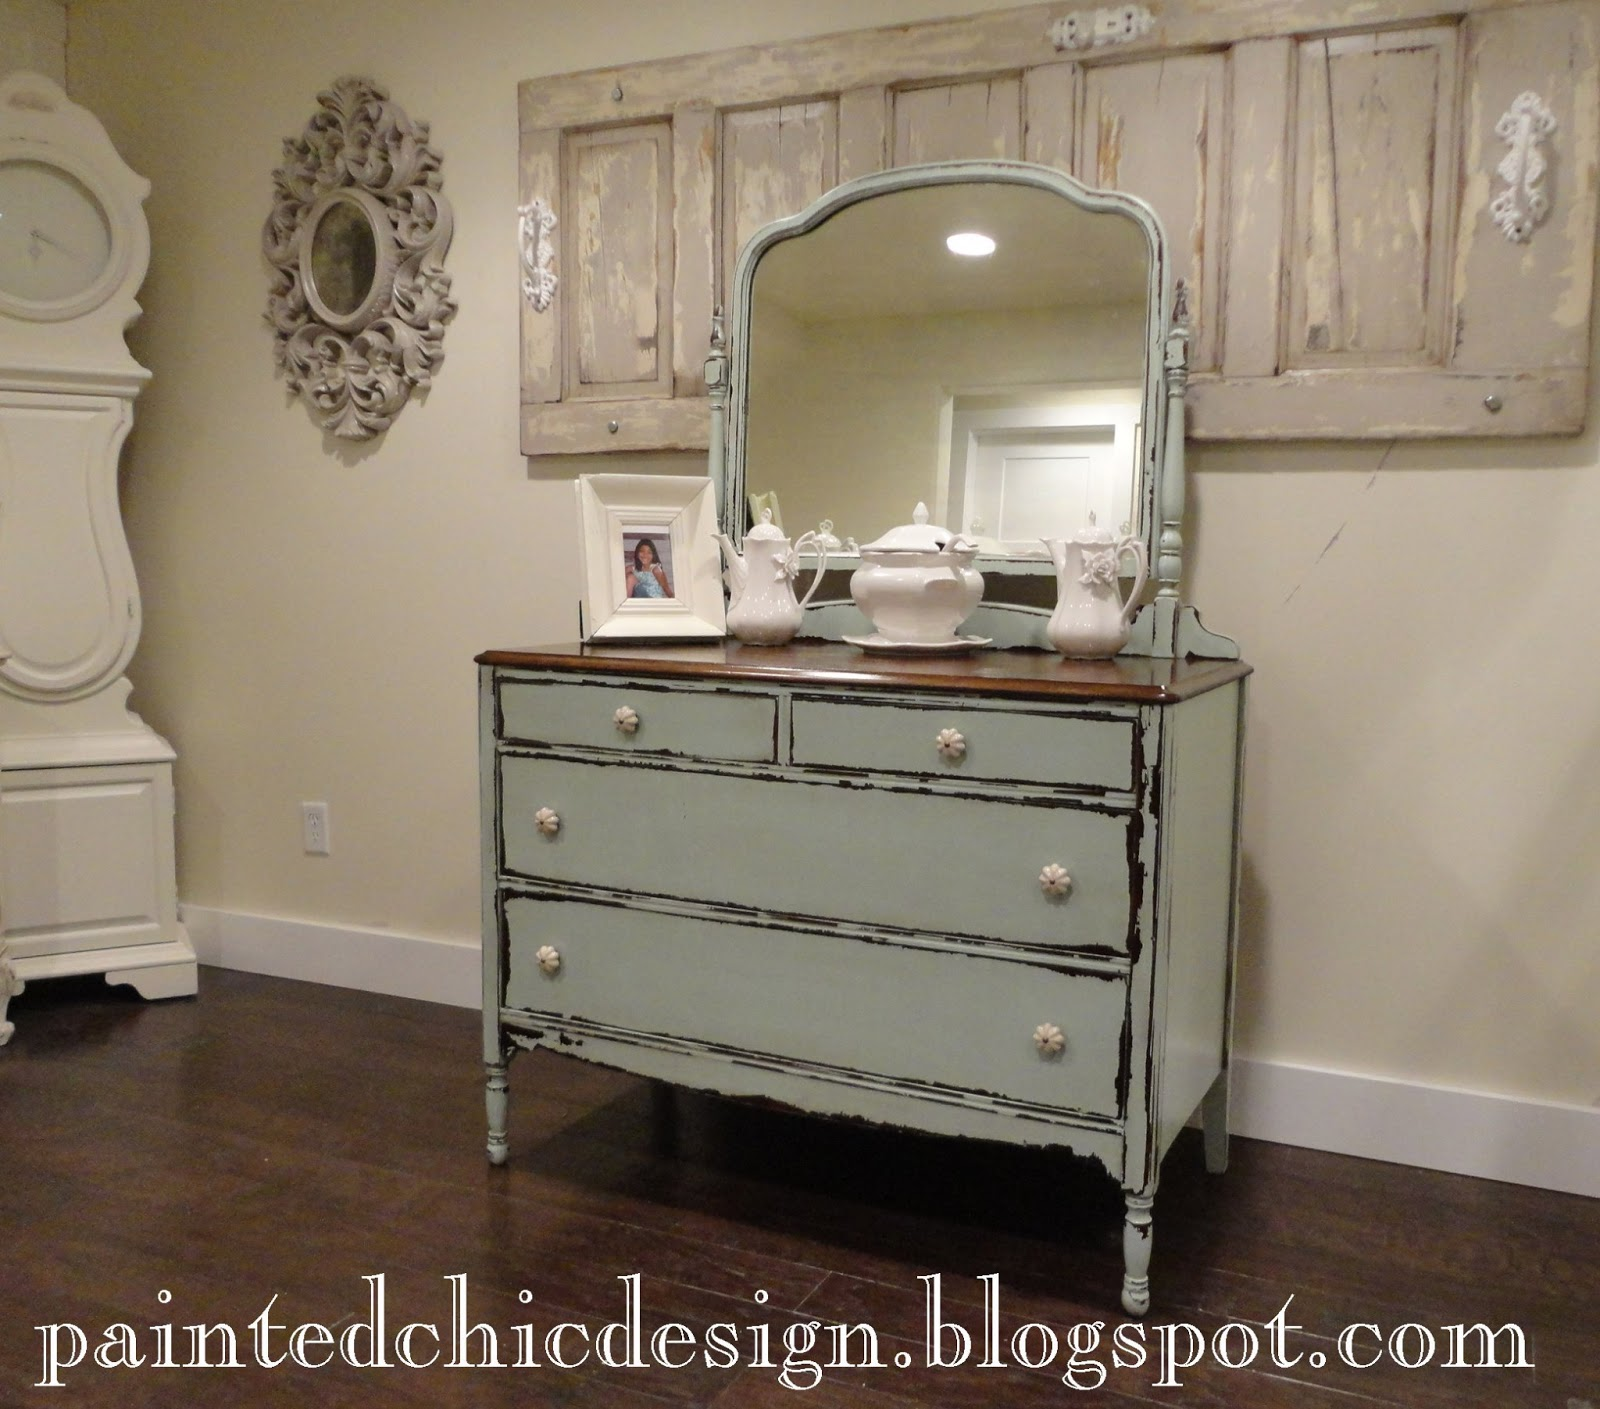 Bathroom Vanities From Old Dressers: The Painted Chic Design: SOLD Antique Dresser With Mirror